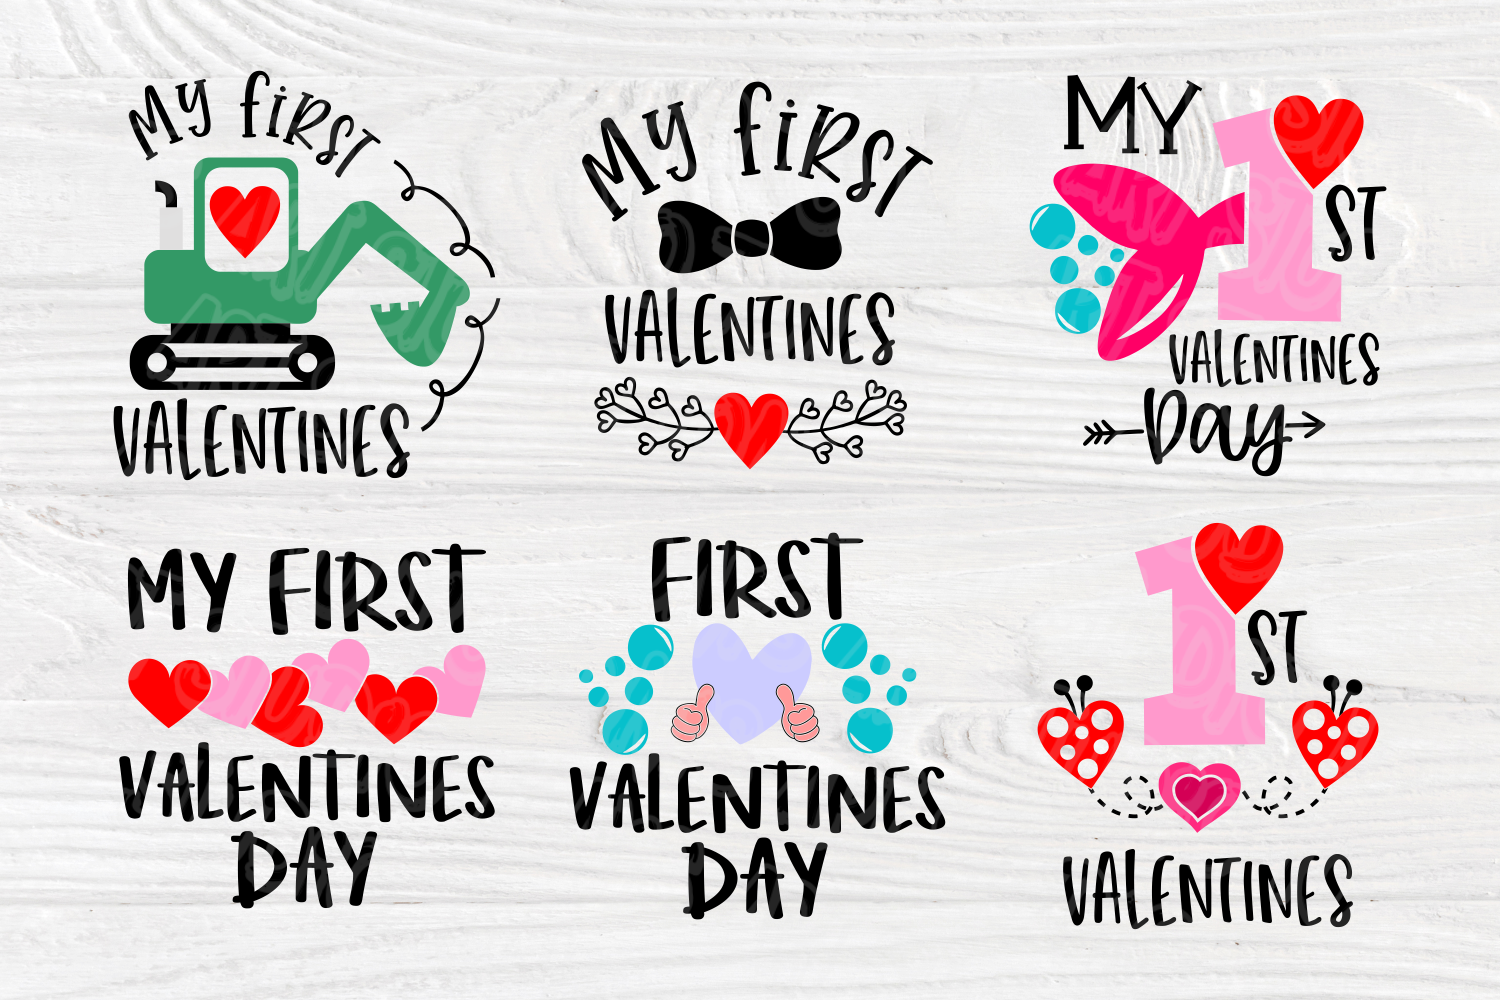 My First Valentine's Day | SVG Bundle | Valentines Quotes example image 4